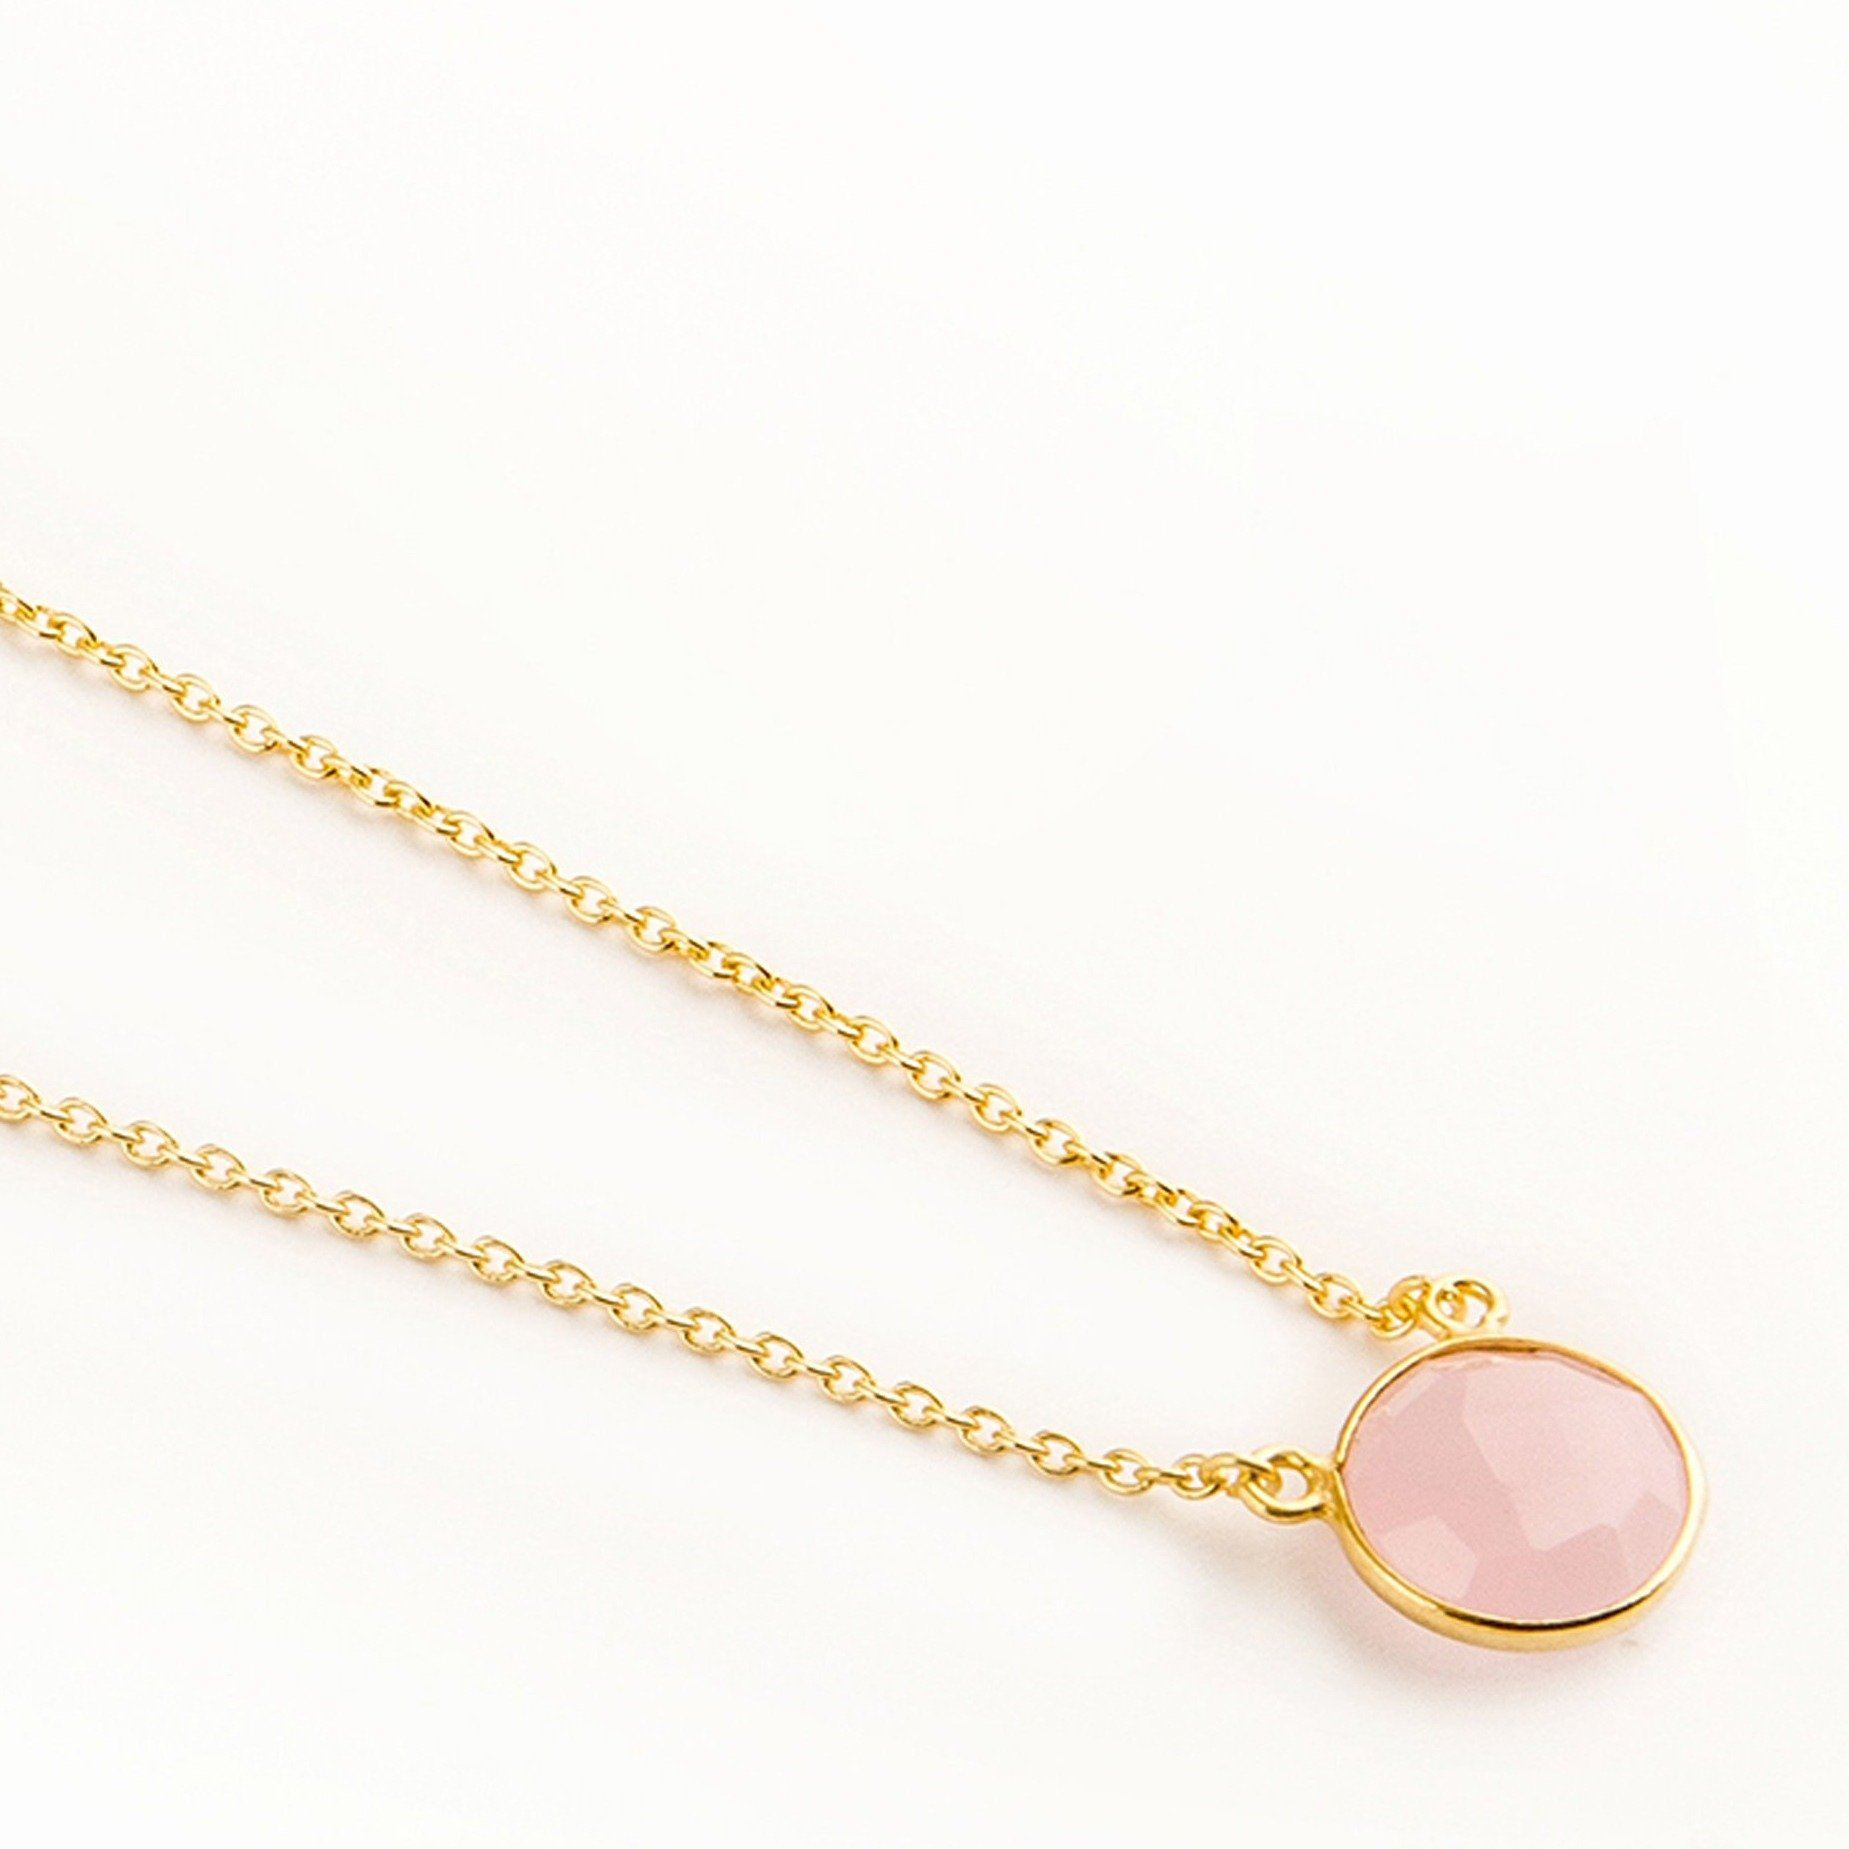 Adele gold-plated silver round chain in rose quartz - Neckpieces